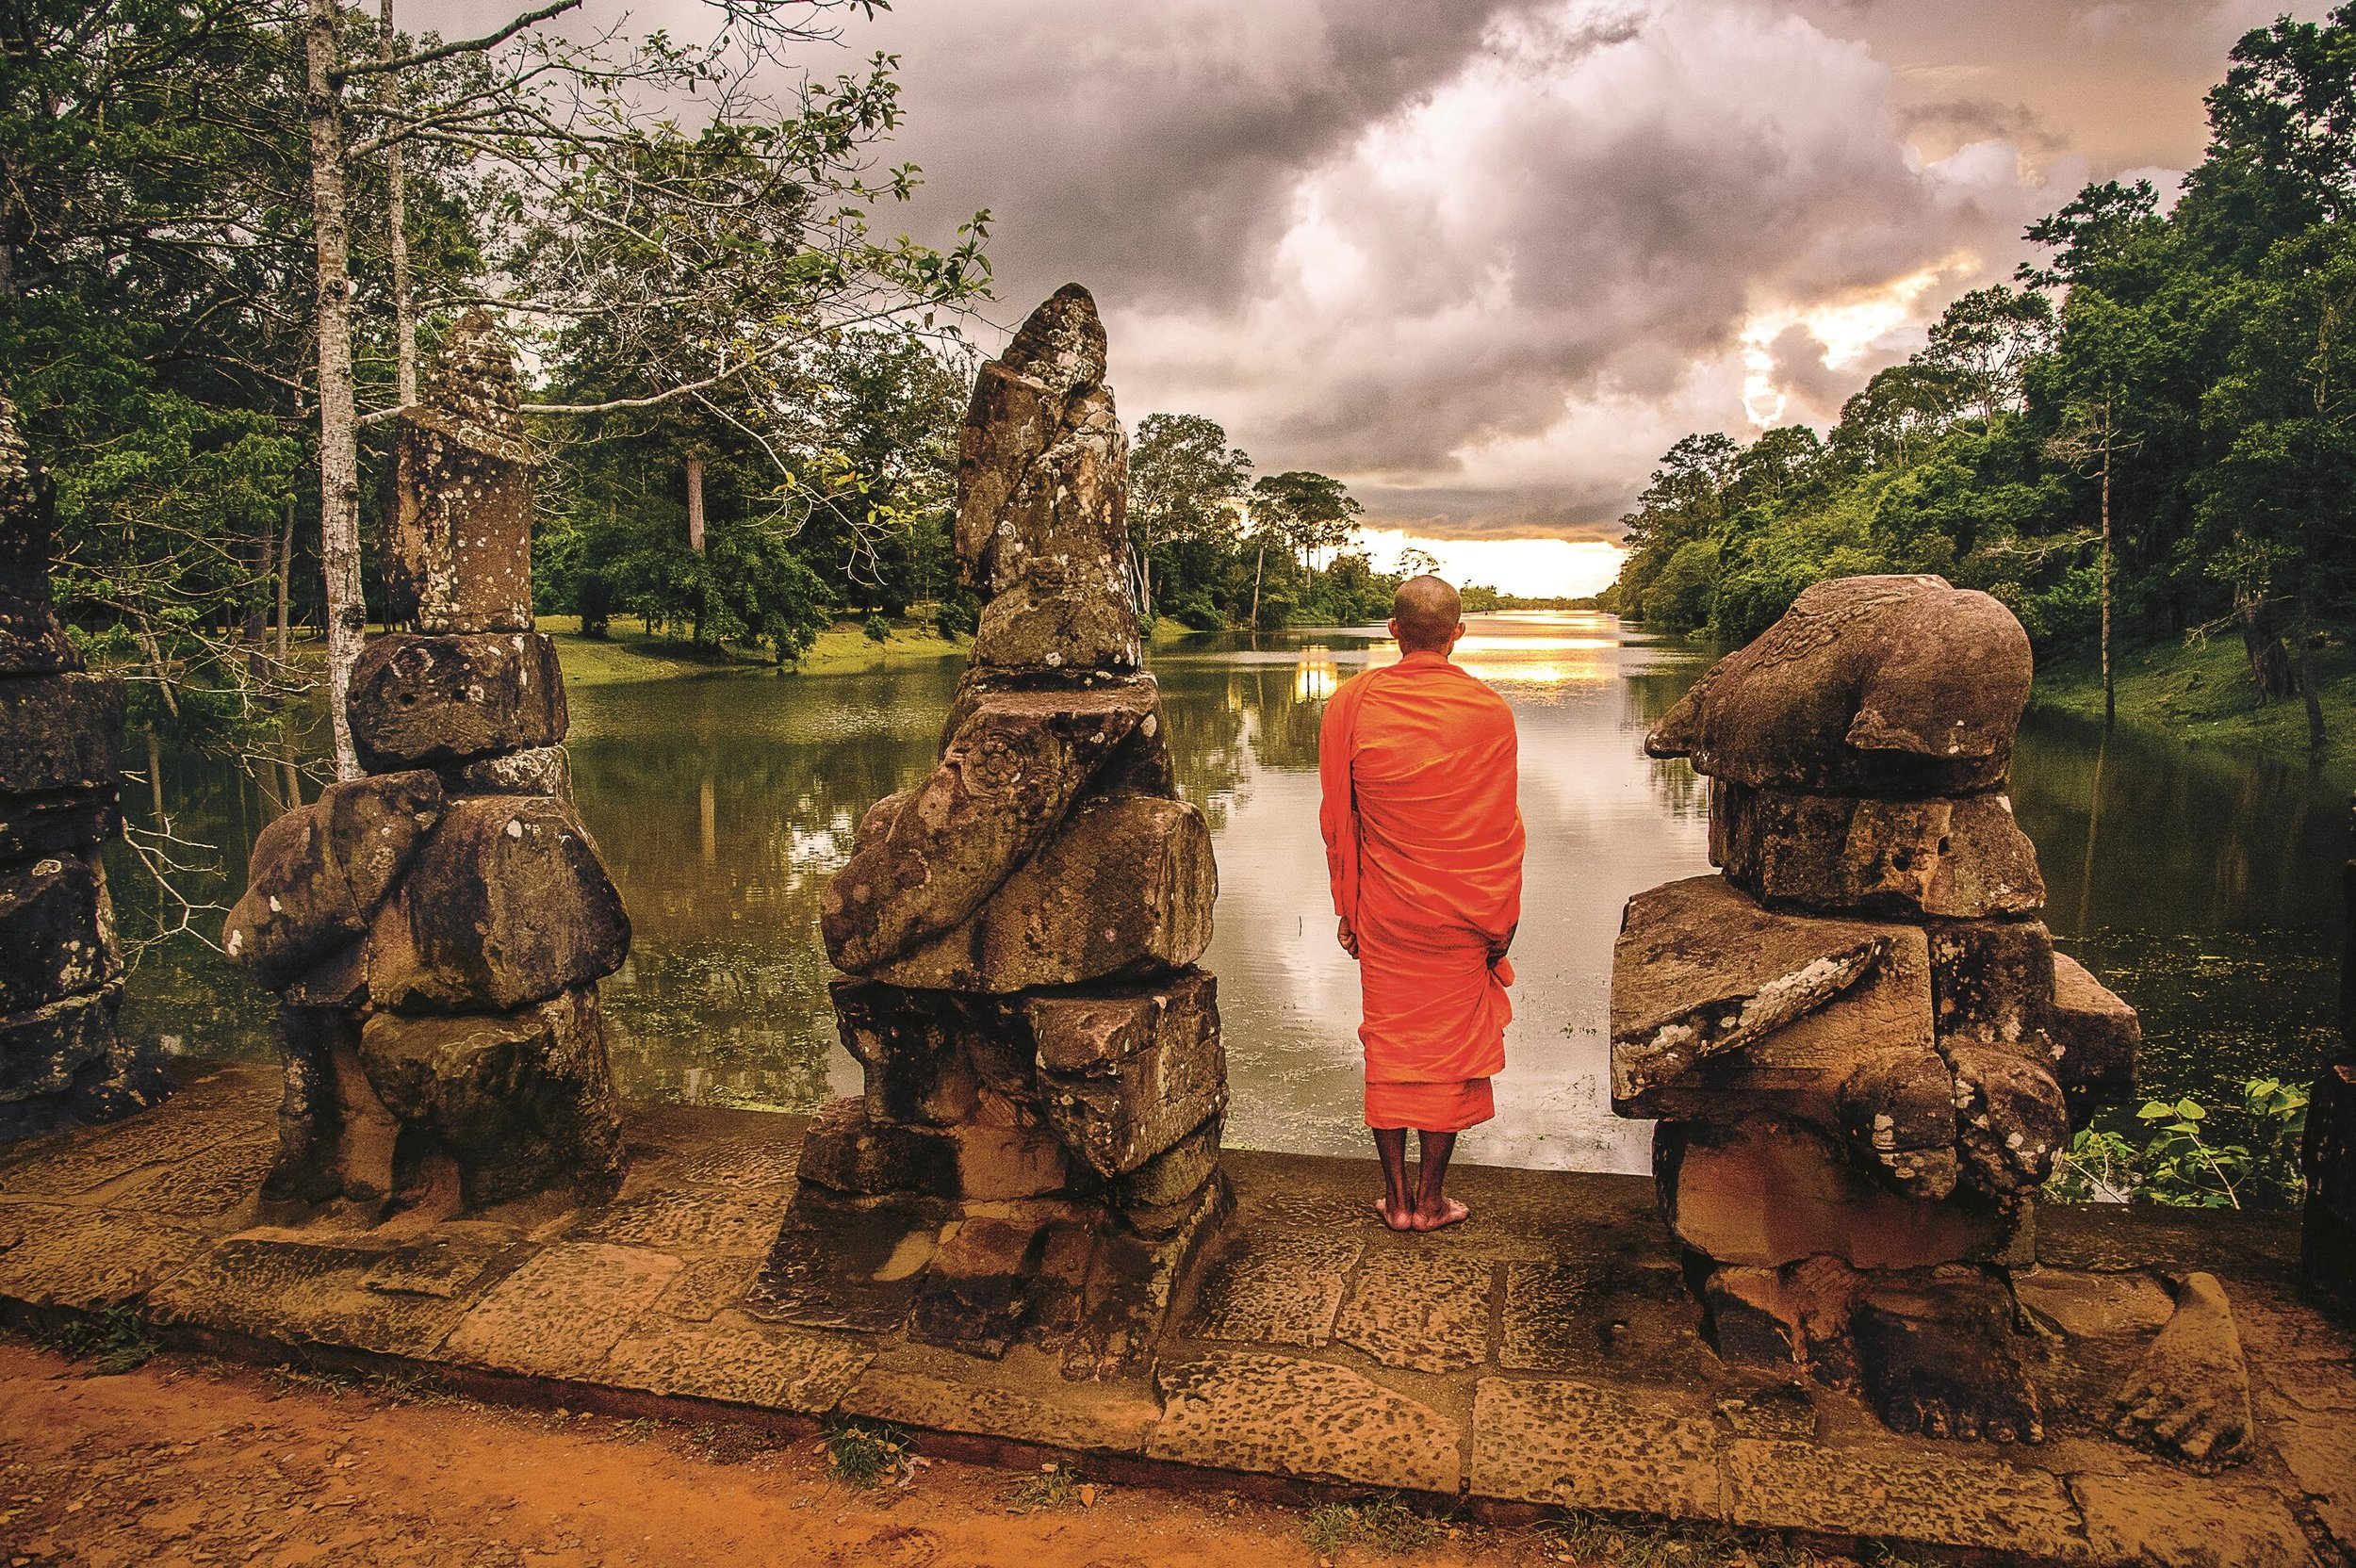 Mekong river cruise INVietnam & Cambodia - April 23-30, 2018RESERVE NOW BY END OF JUNE FOR 50% OFF CRUISE RATE